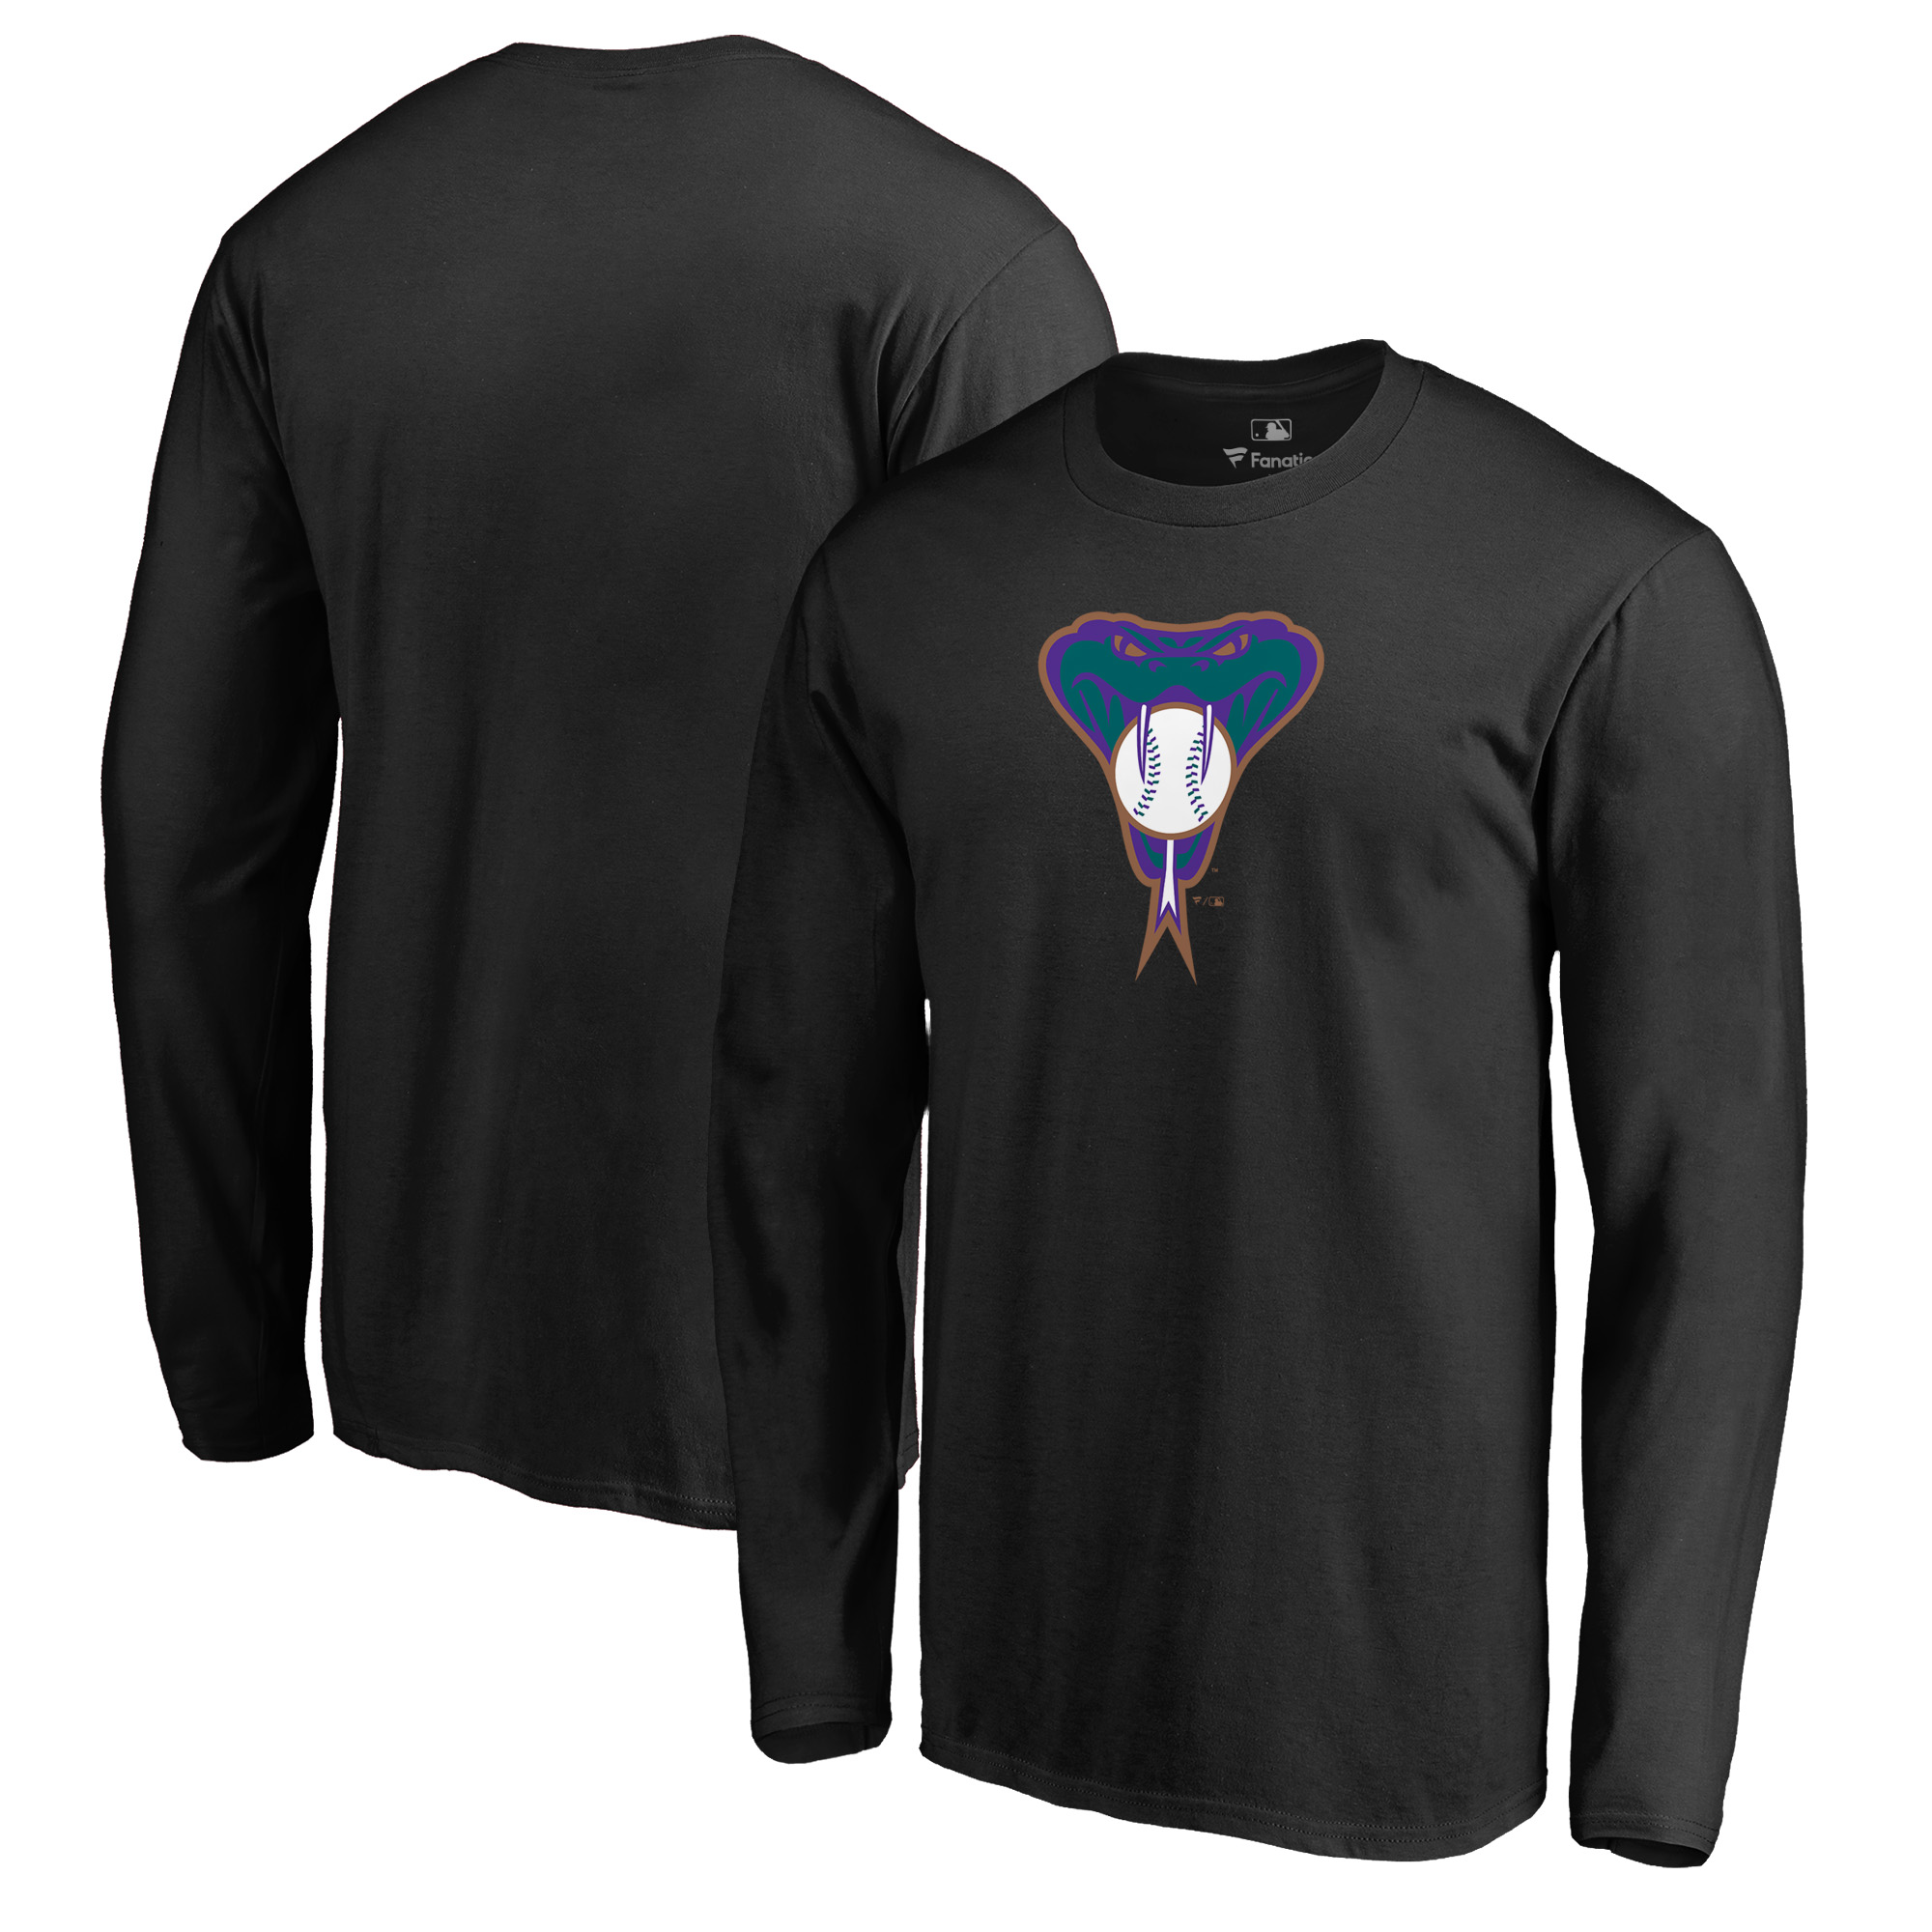 Arizona Diamondbacks Fanatics Branded Big & Tall Cooperstown Collection Huntington Long Sleeve T-Shirt - Black